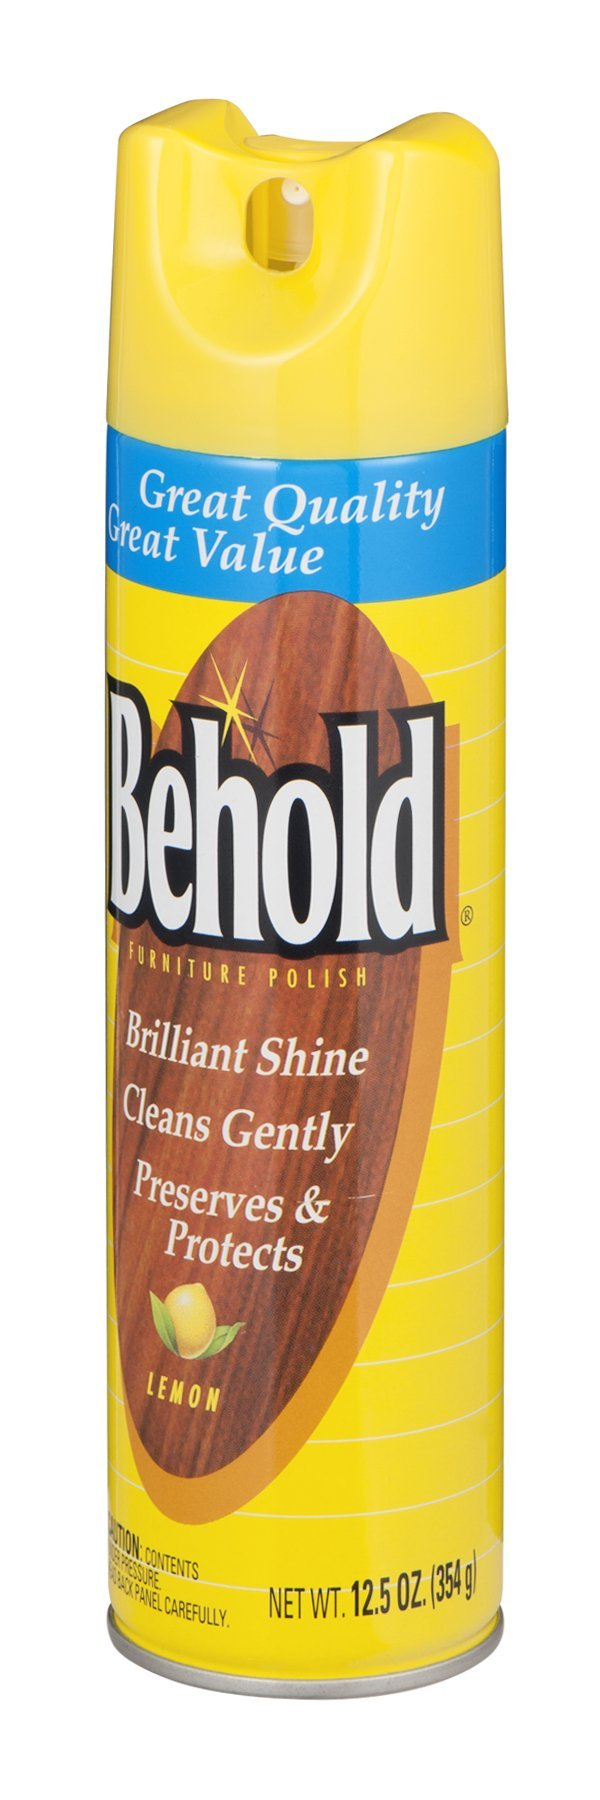 Behold Furniture Polish Lemon 12.5 OZ (Pack of 24)